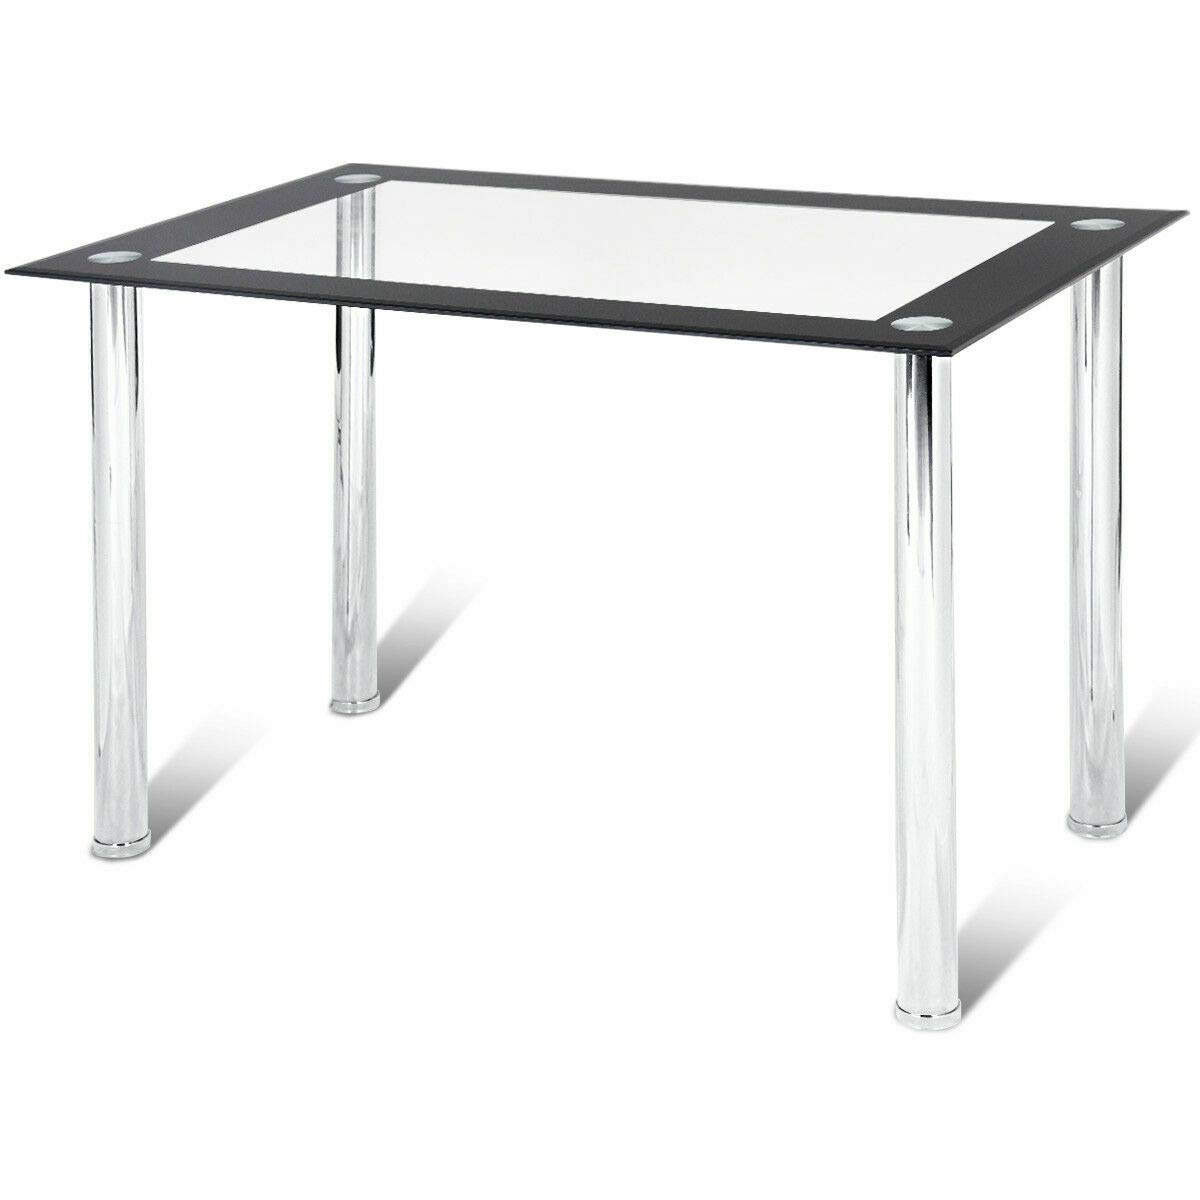 Angel611 Modern Dining Table Tempered Glass Top Steel Frame Kitchen Breakfast Furniture Hallway Room by Angel611